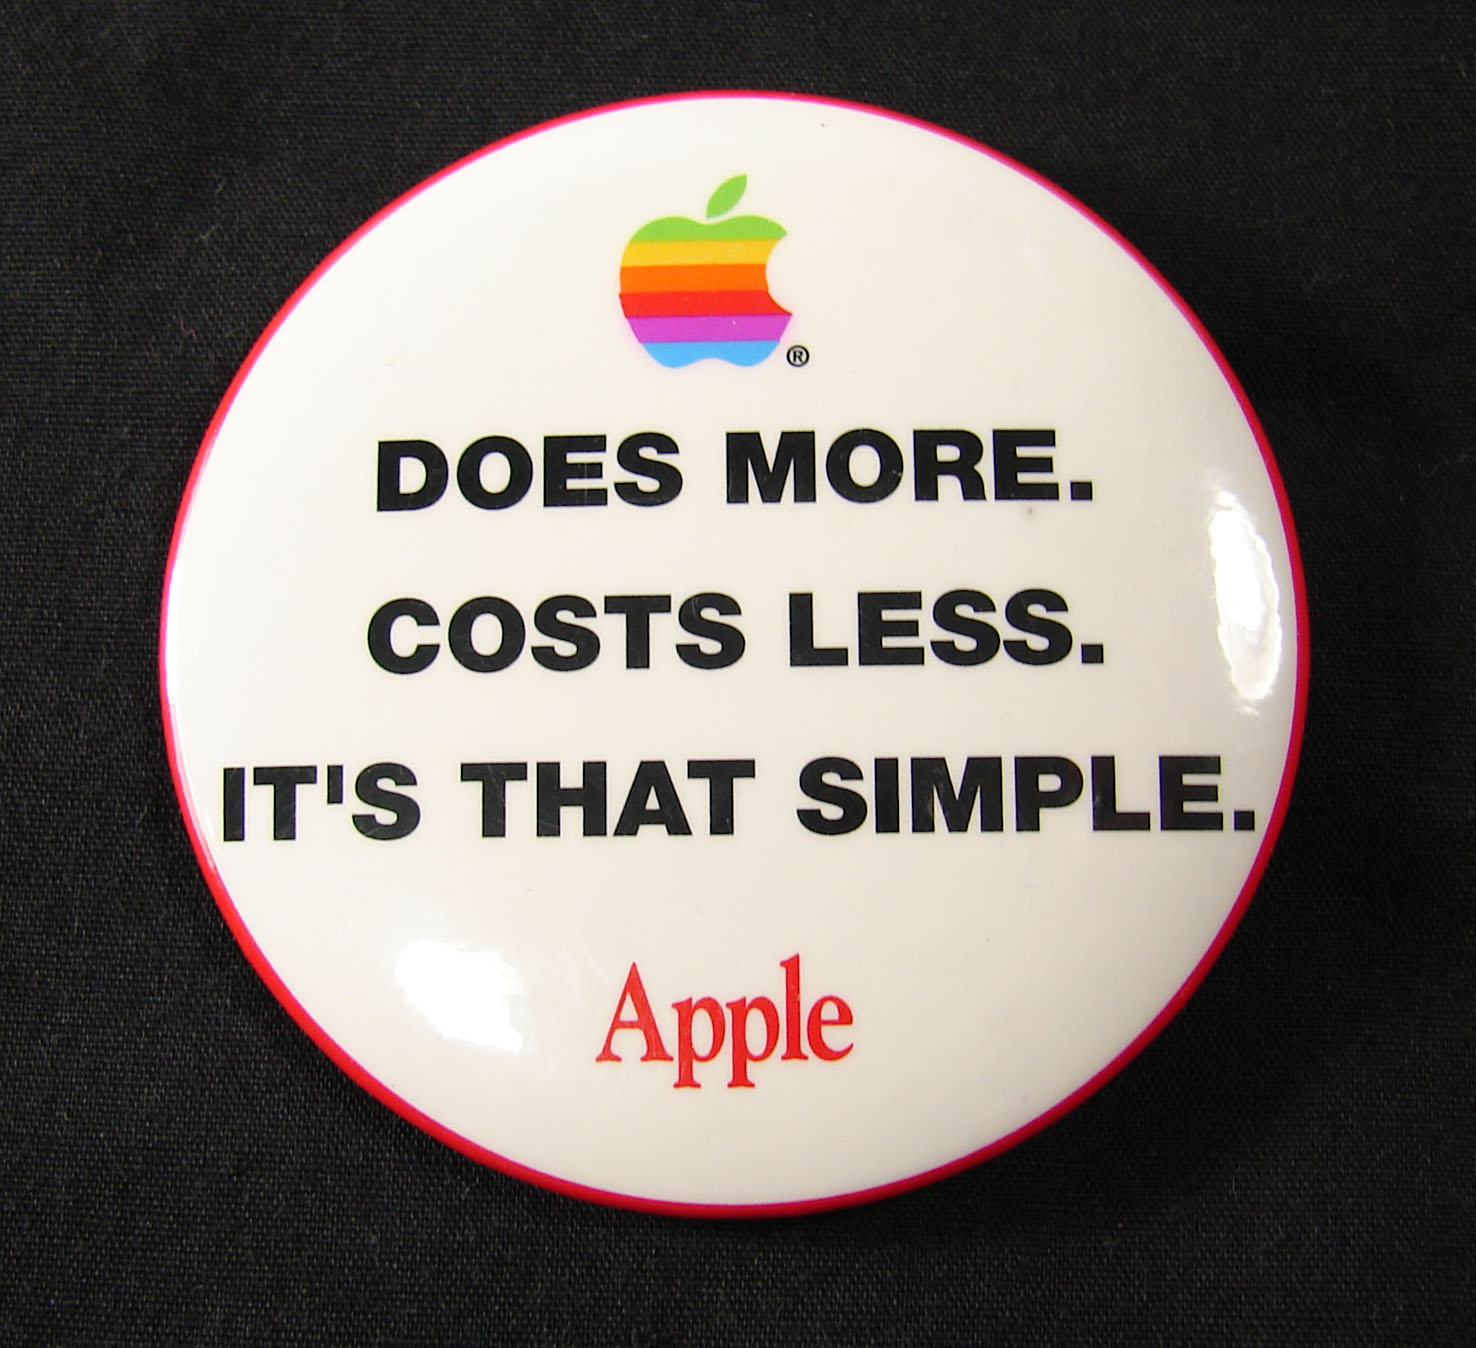 apple-costs-less-button.jpg